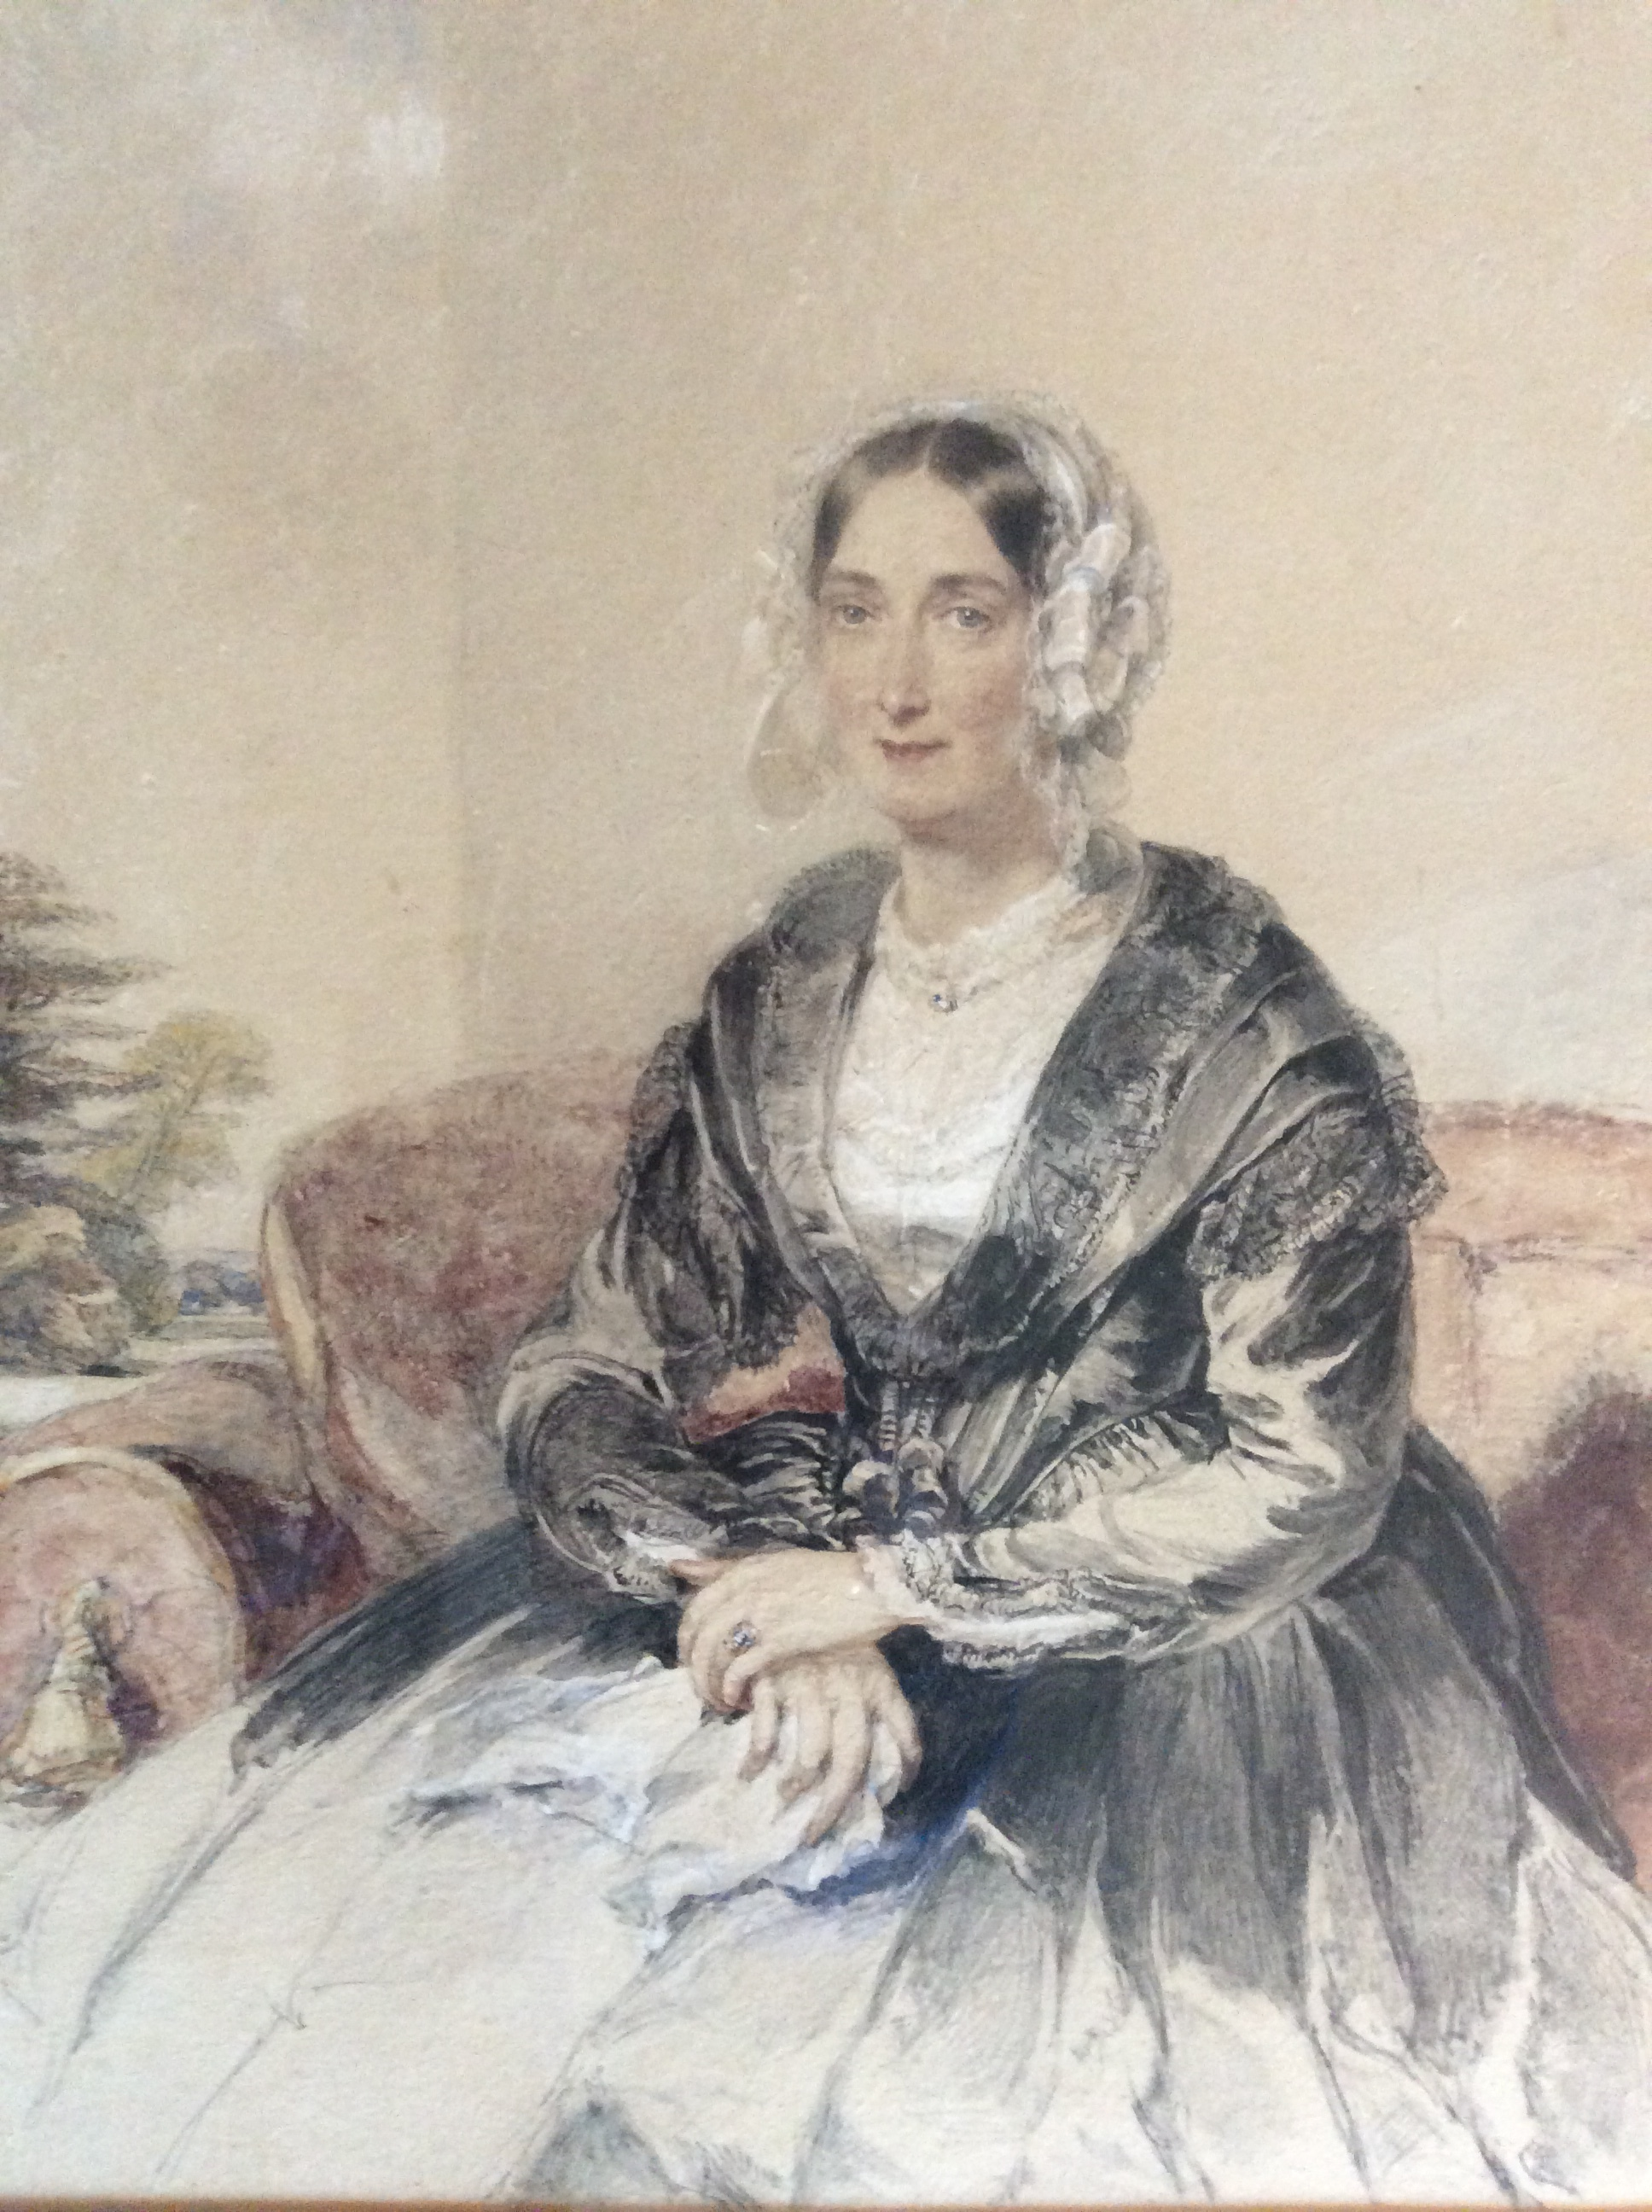 Elizabeth Harding Withington, Anthony Harding's daughter